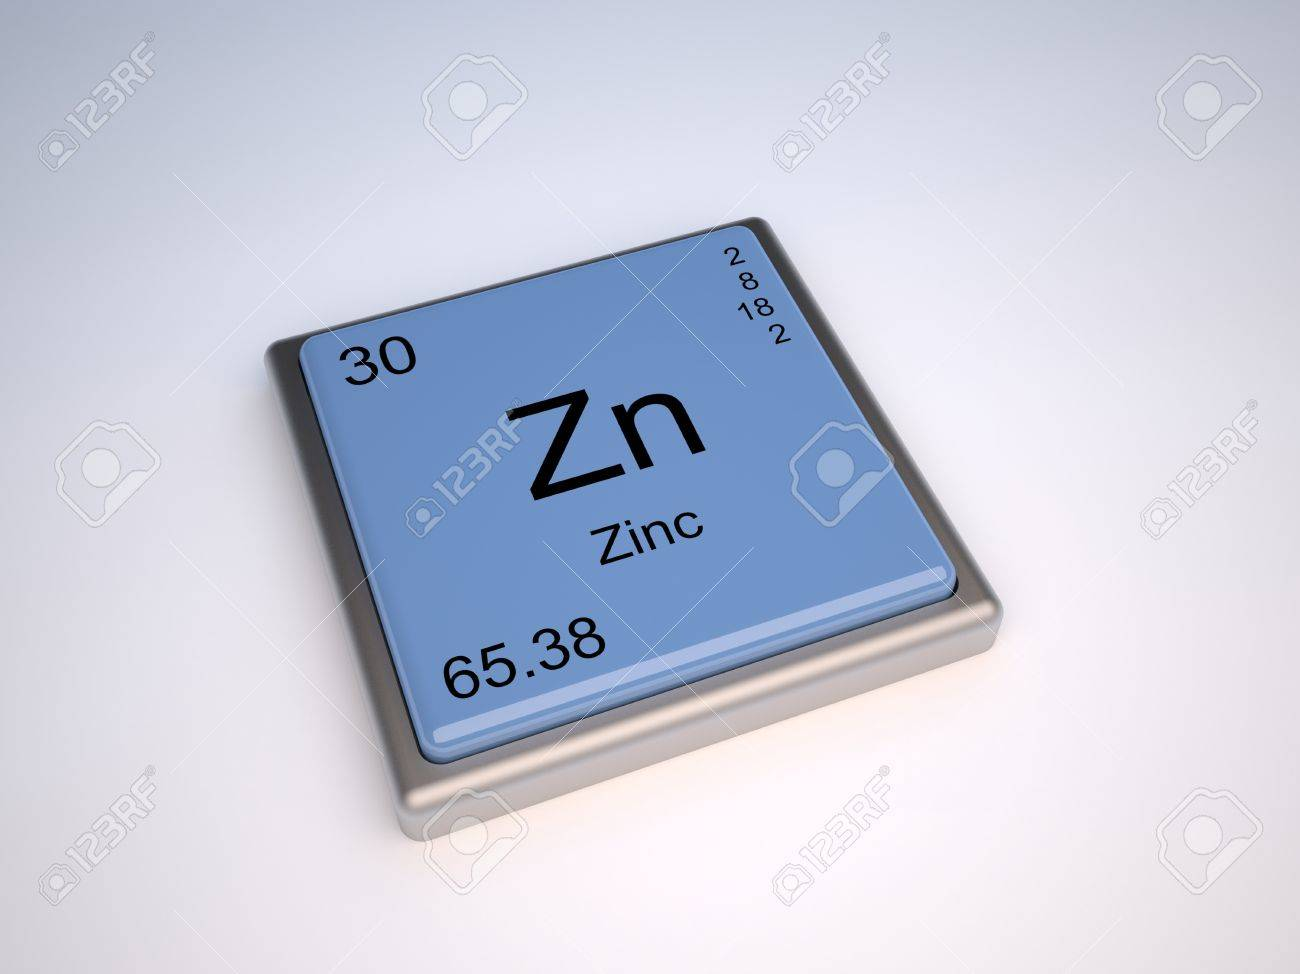 Zinc Chemical Element Of The Periodic Table With Symbol Zn Stock